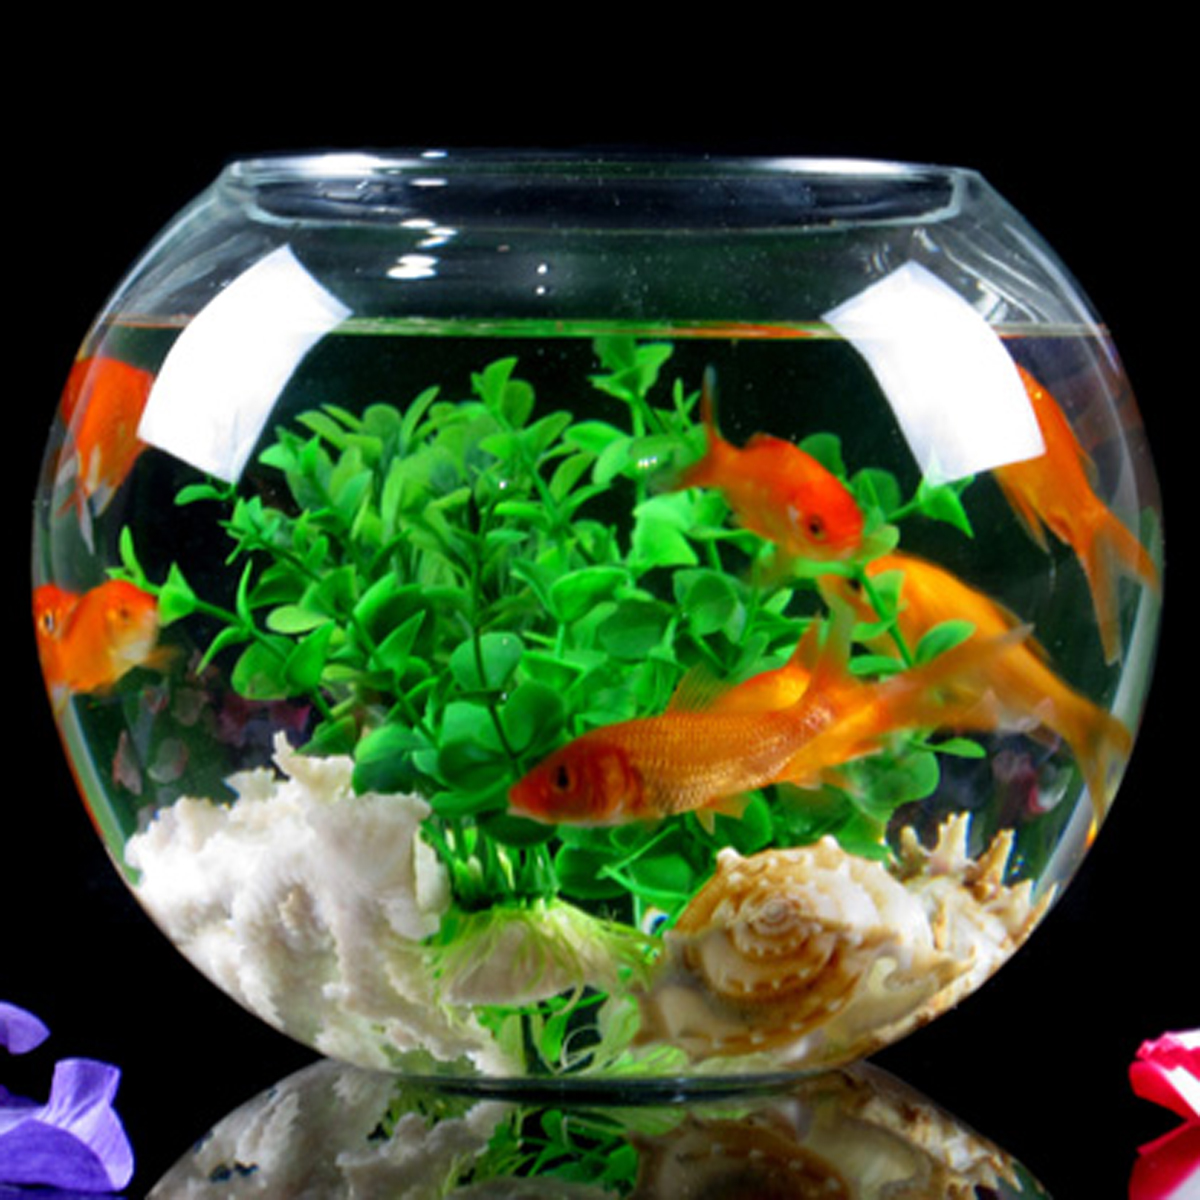 Flower vase with fish - Aliexpress Com Buy Modern Fashion Wo Transparent Glass Ball Fish Tank Living Room Decoration Vase Flower Decoration Measurement From Reliable Vase Price